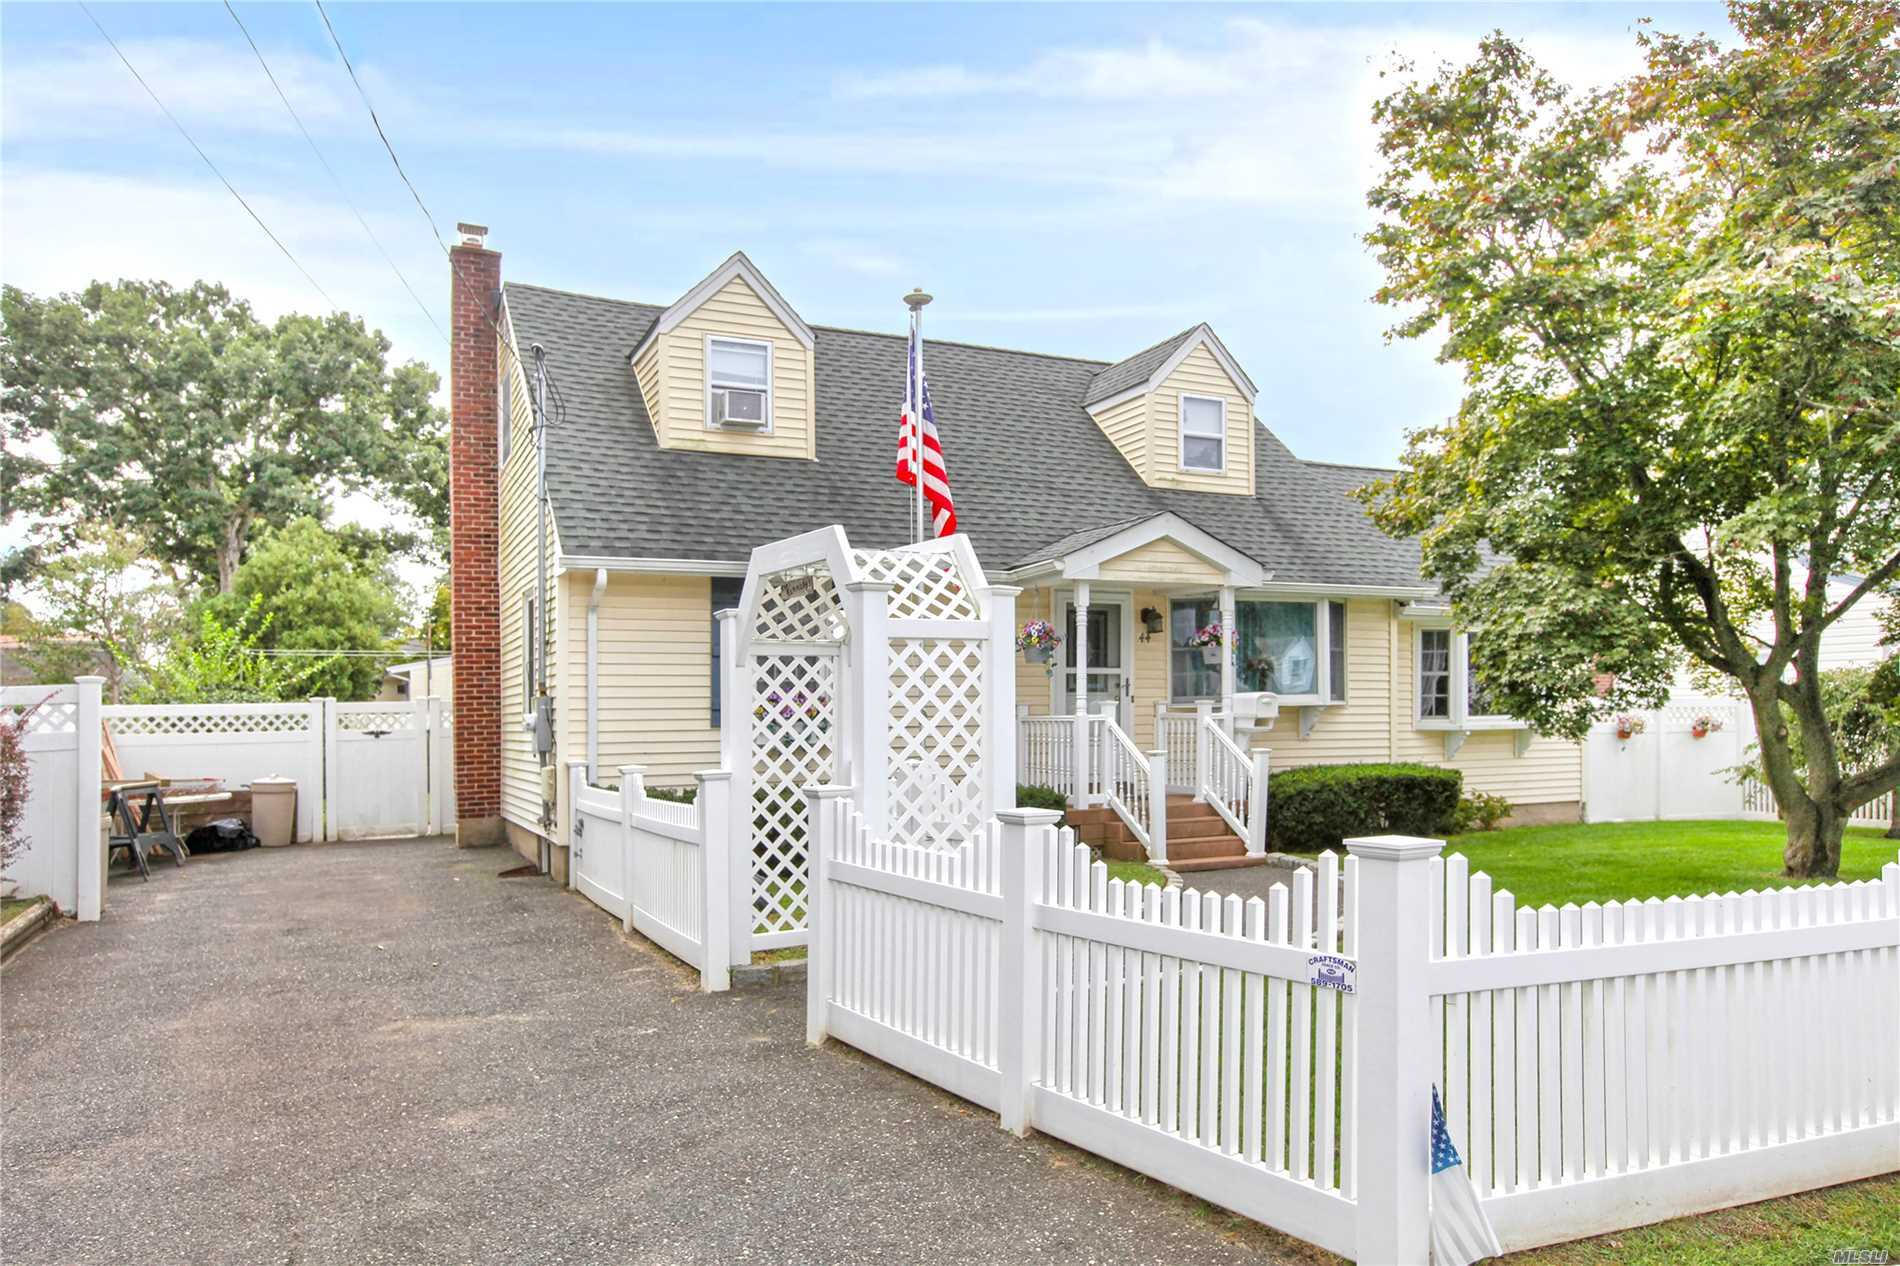 Large Expanded Cape In Sachem School District! 4 Brs, 2 Full Baths, Living Room, Den, Formal Dining Room, Den, Large Extended Kitchen, Florida Room With Skylights! Roof, Windows, Siding - 5 Years Old! Gas Heating, Hardwood Floors! Close To Shopping, Lirr, Lie!